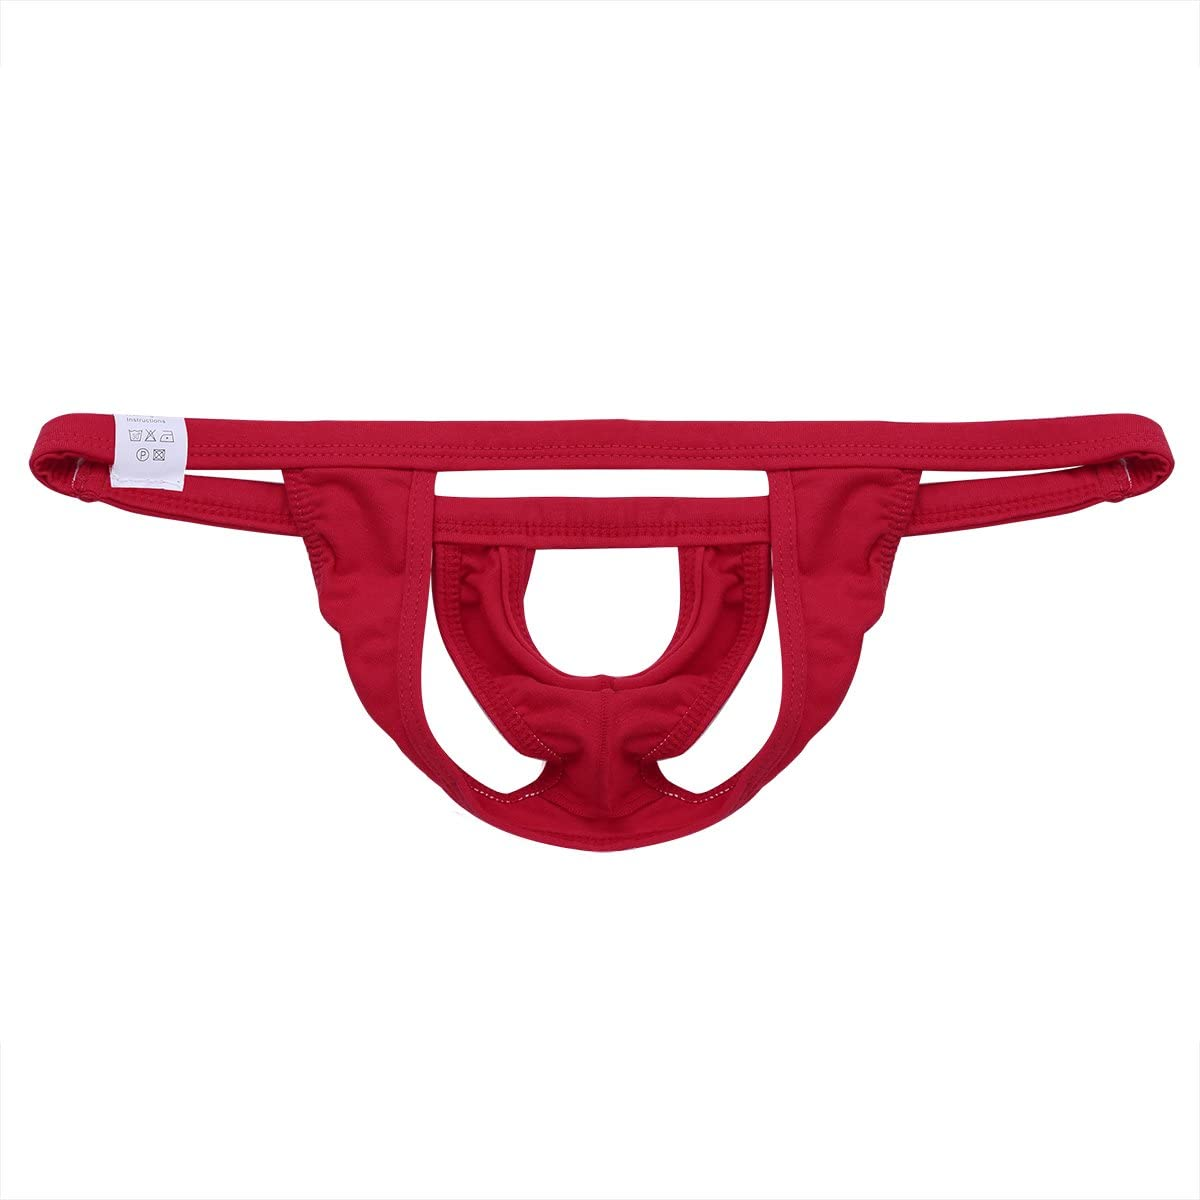 Agoky Mens Open Front Hole Underwear Jock Strap C-Strap Enhancing Briefs Pouch Lifter Thong